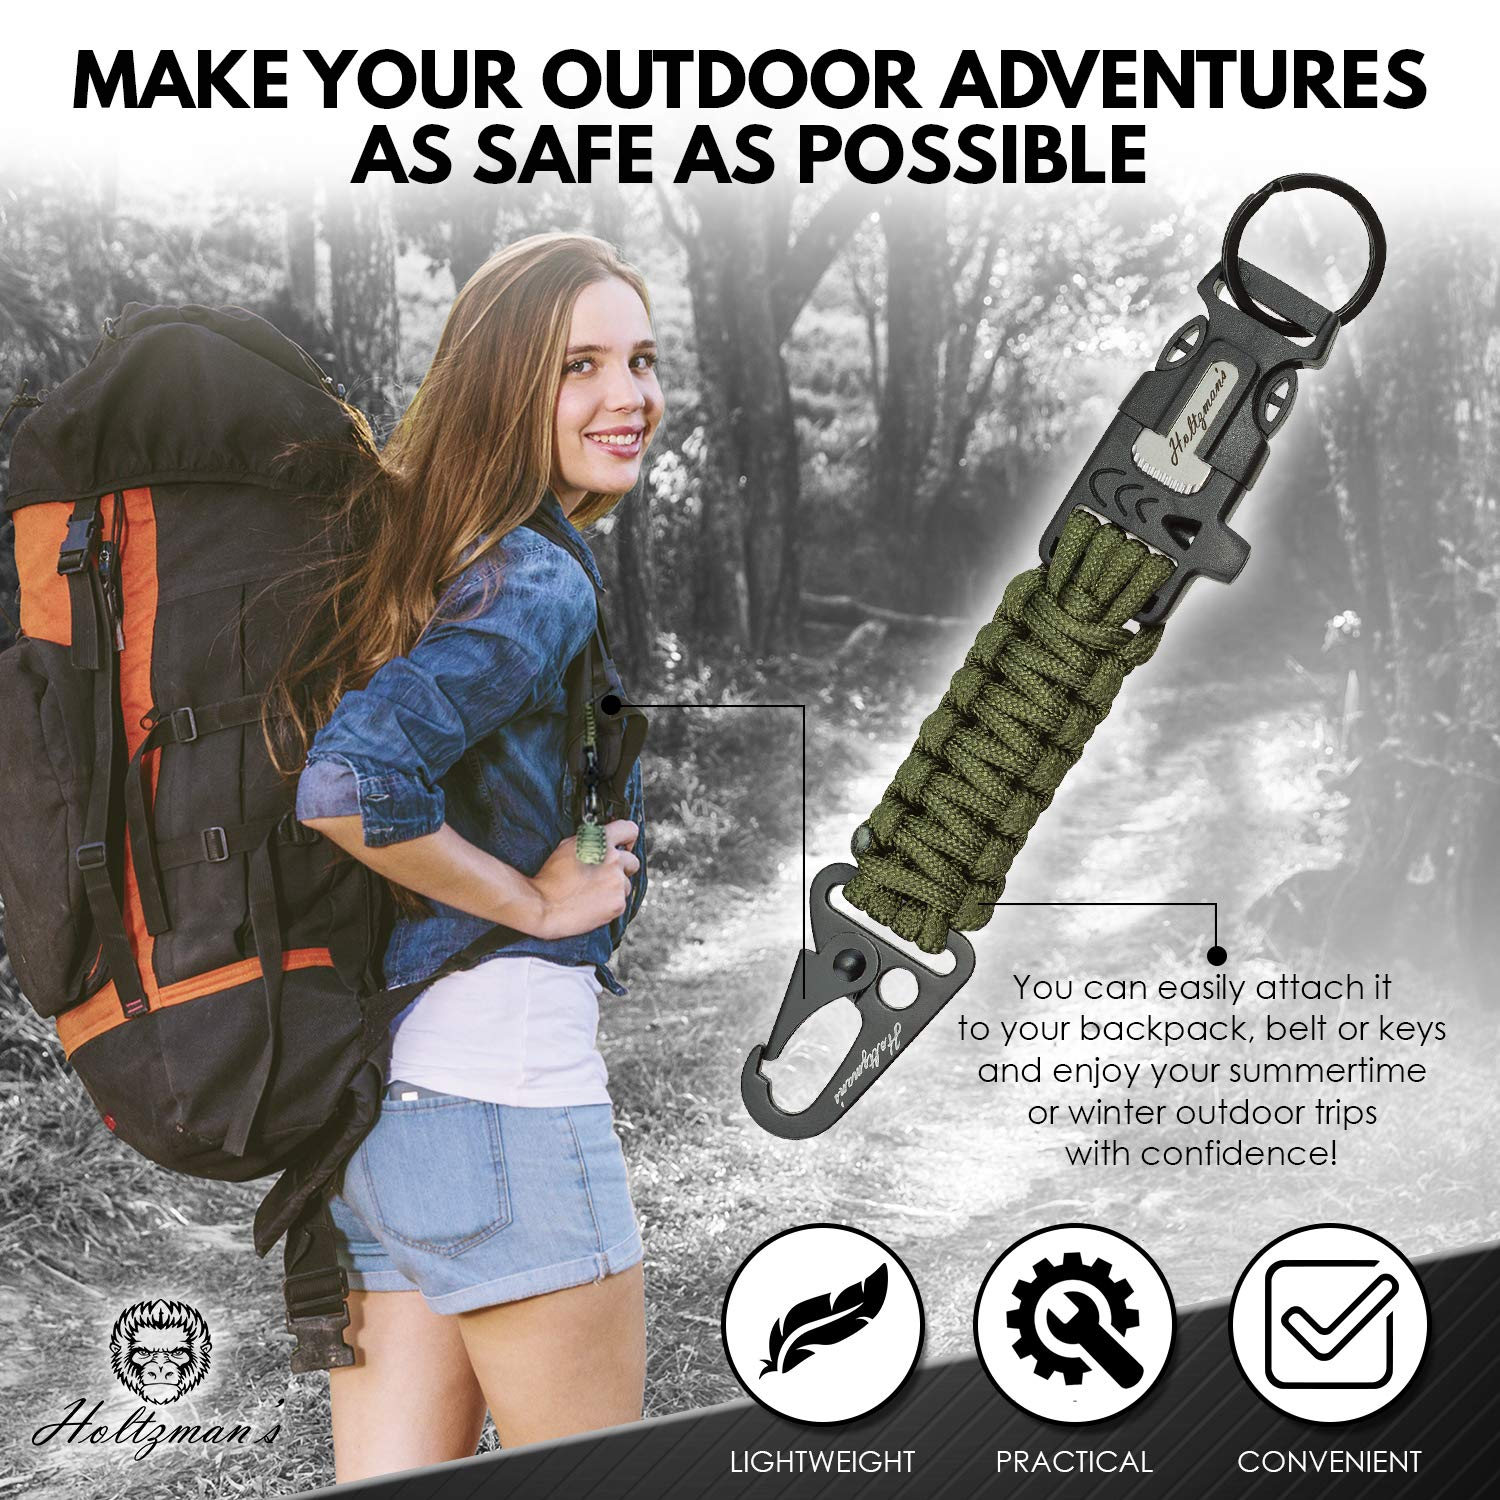 Ultimate 5-in-1 Paracord Keychain with Carabiner for Camping, Fishing, Hunting & Outdoor Emergencies | Multipurpose Survival Tool with Paracord, Emergency Whistle, Flint Rod, Cutting Tool & Key by Holtzman's Gorilla Survival (Image #3)